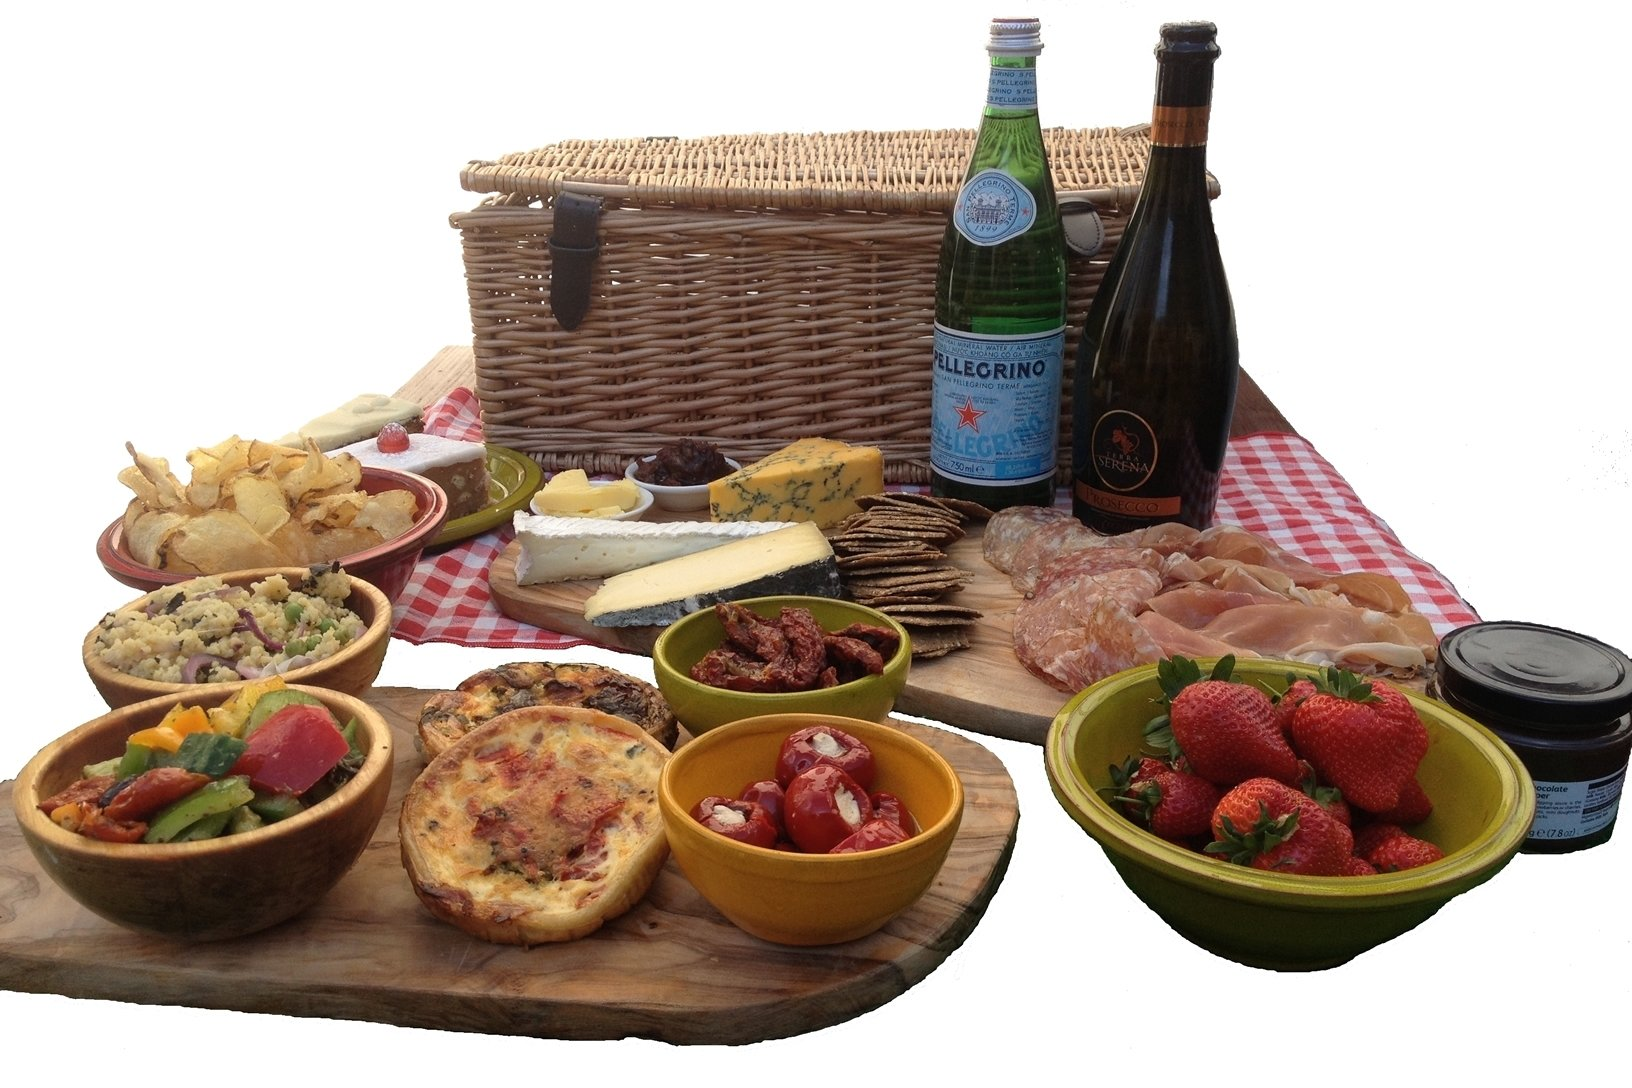 10 Beautiful Picnic Food Ideas For Couples the fool proof picnic basket newcastle advertiser 2021